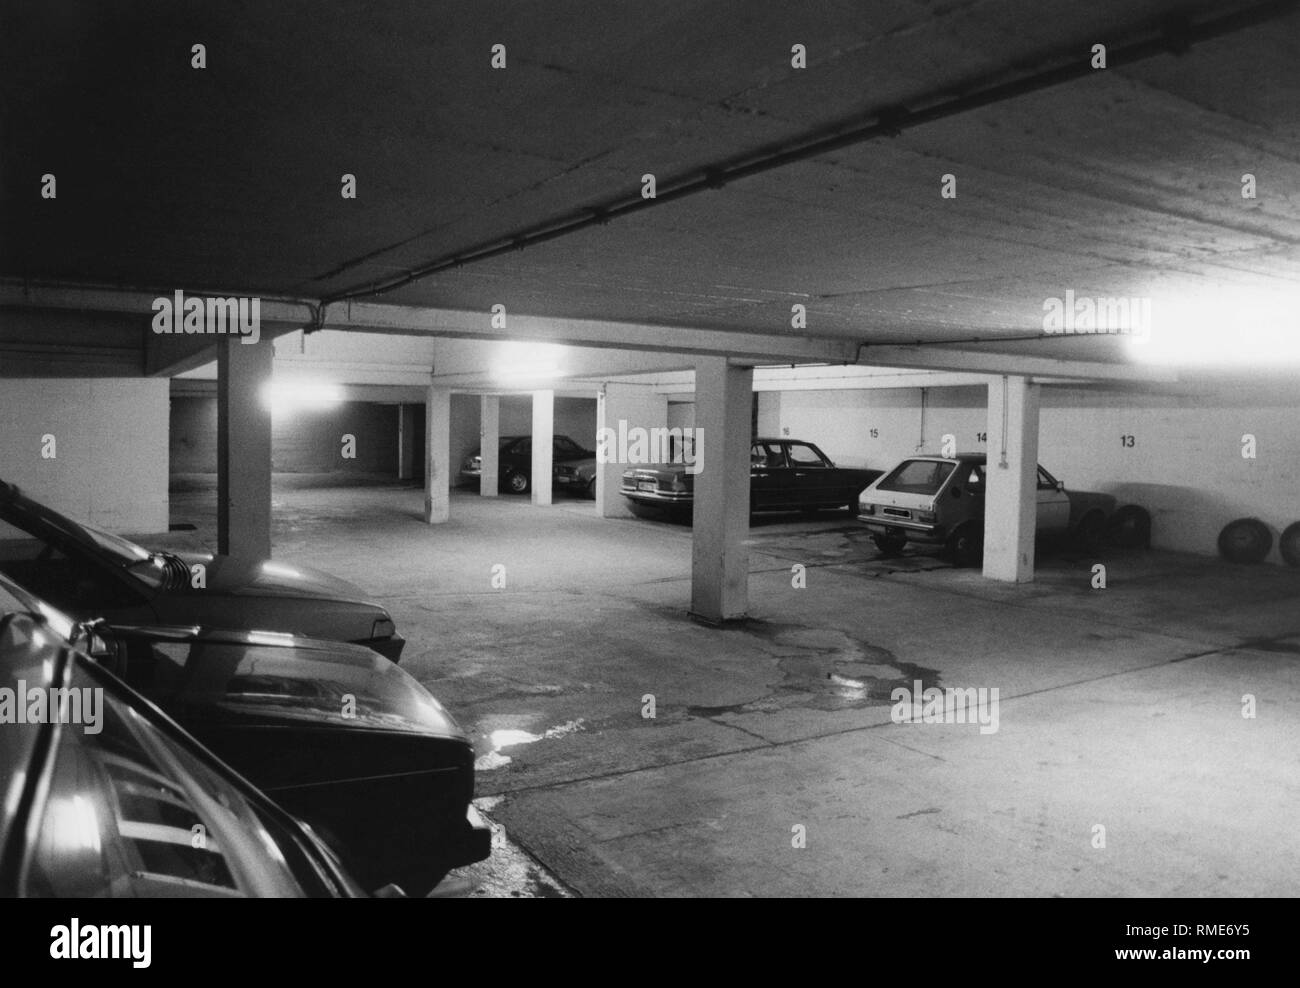 An underground car park in 1985. In the background, a VW Golf I and a Mercedes S-Class (W116). - Stock Image